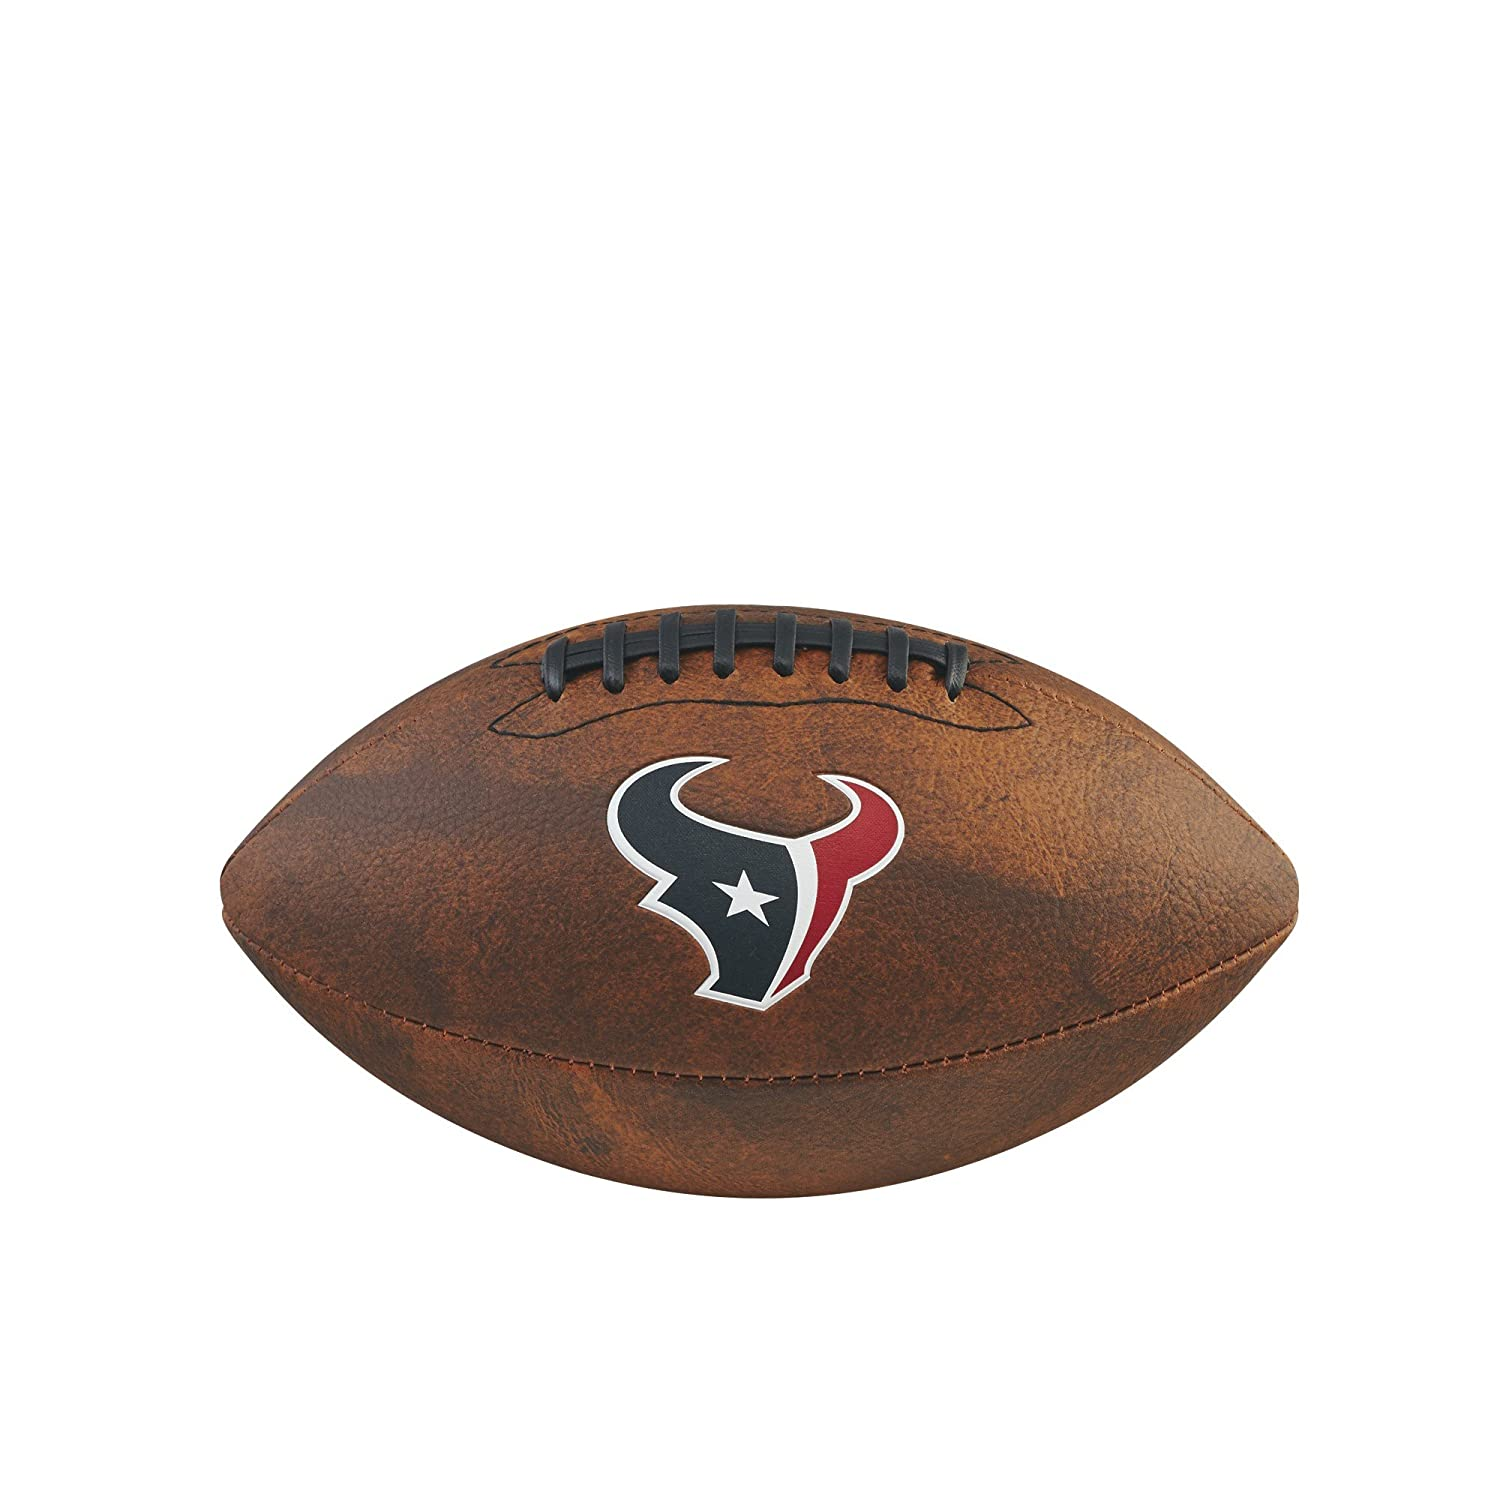 Game Master NFL Houston Texans Junior Wilson Throwback Football, 11-Inch, Brown Gulf Coast Sales WTF1539XBHU